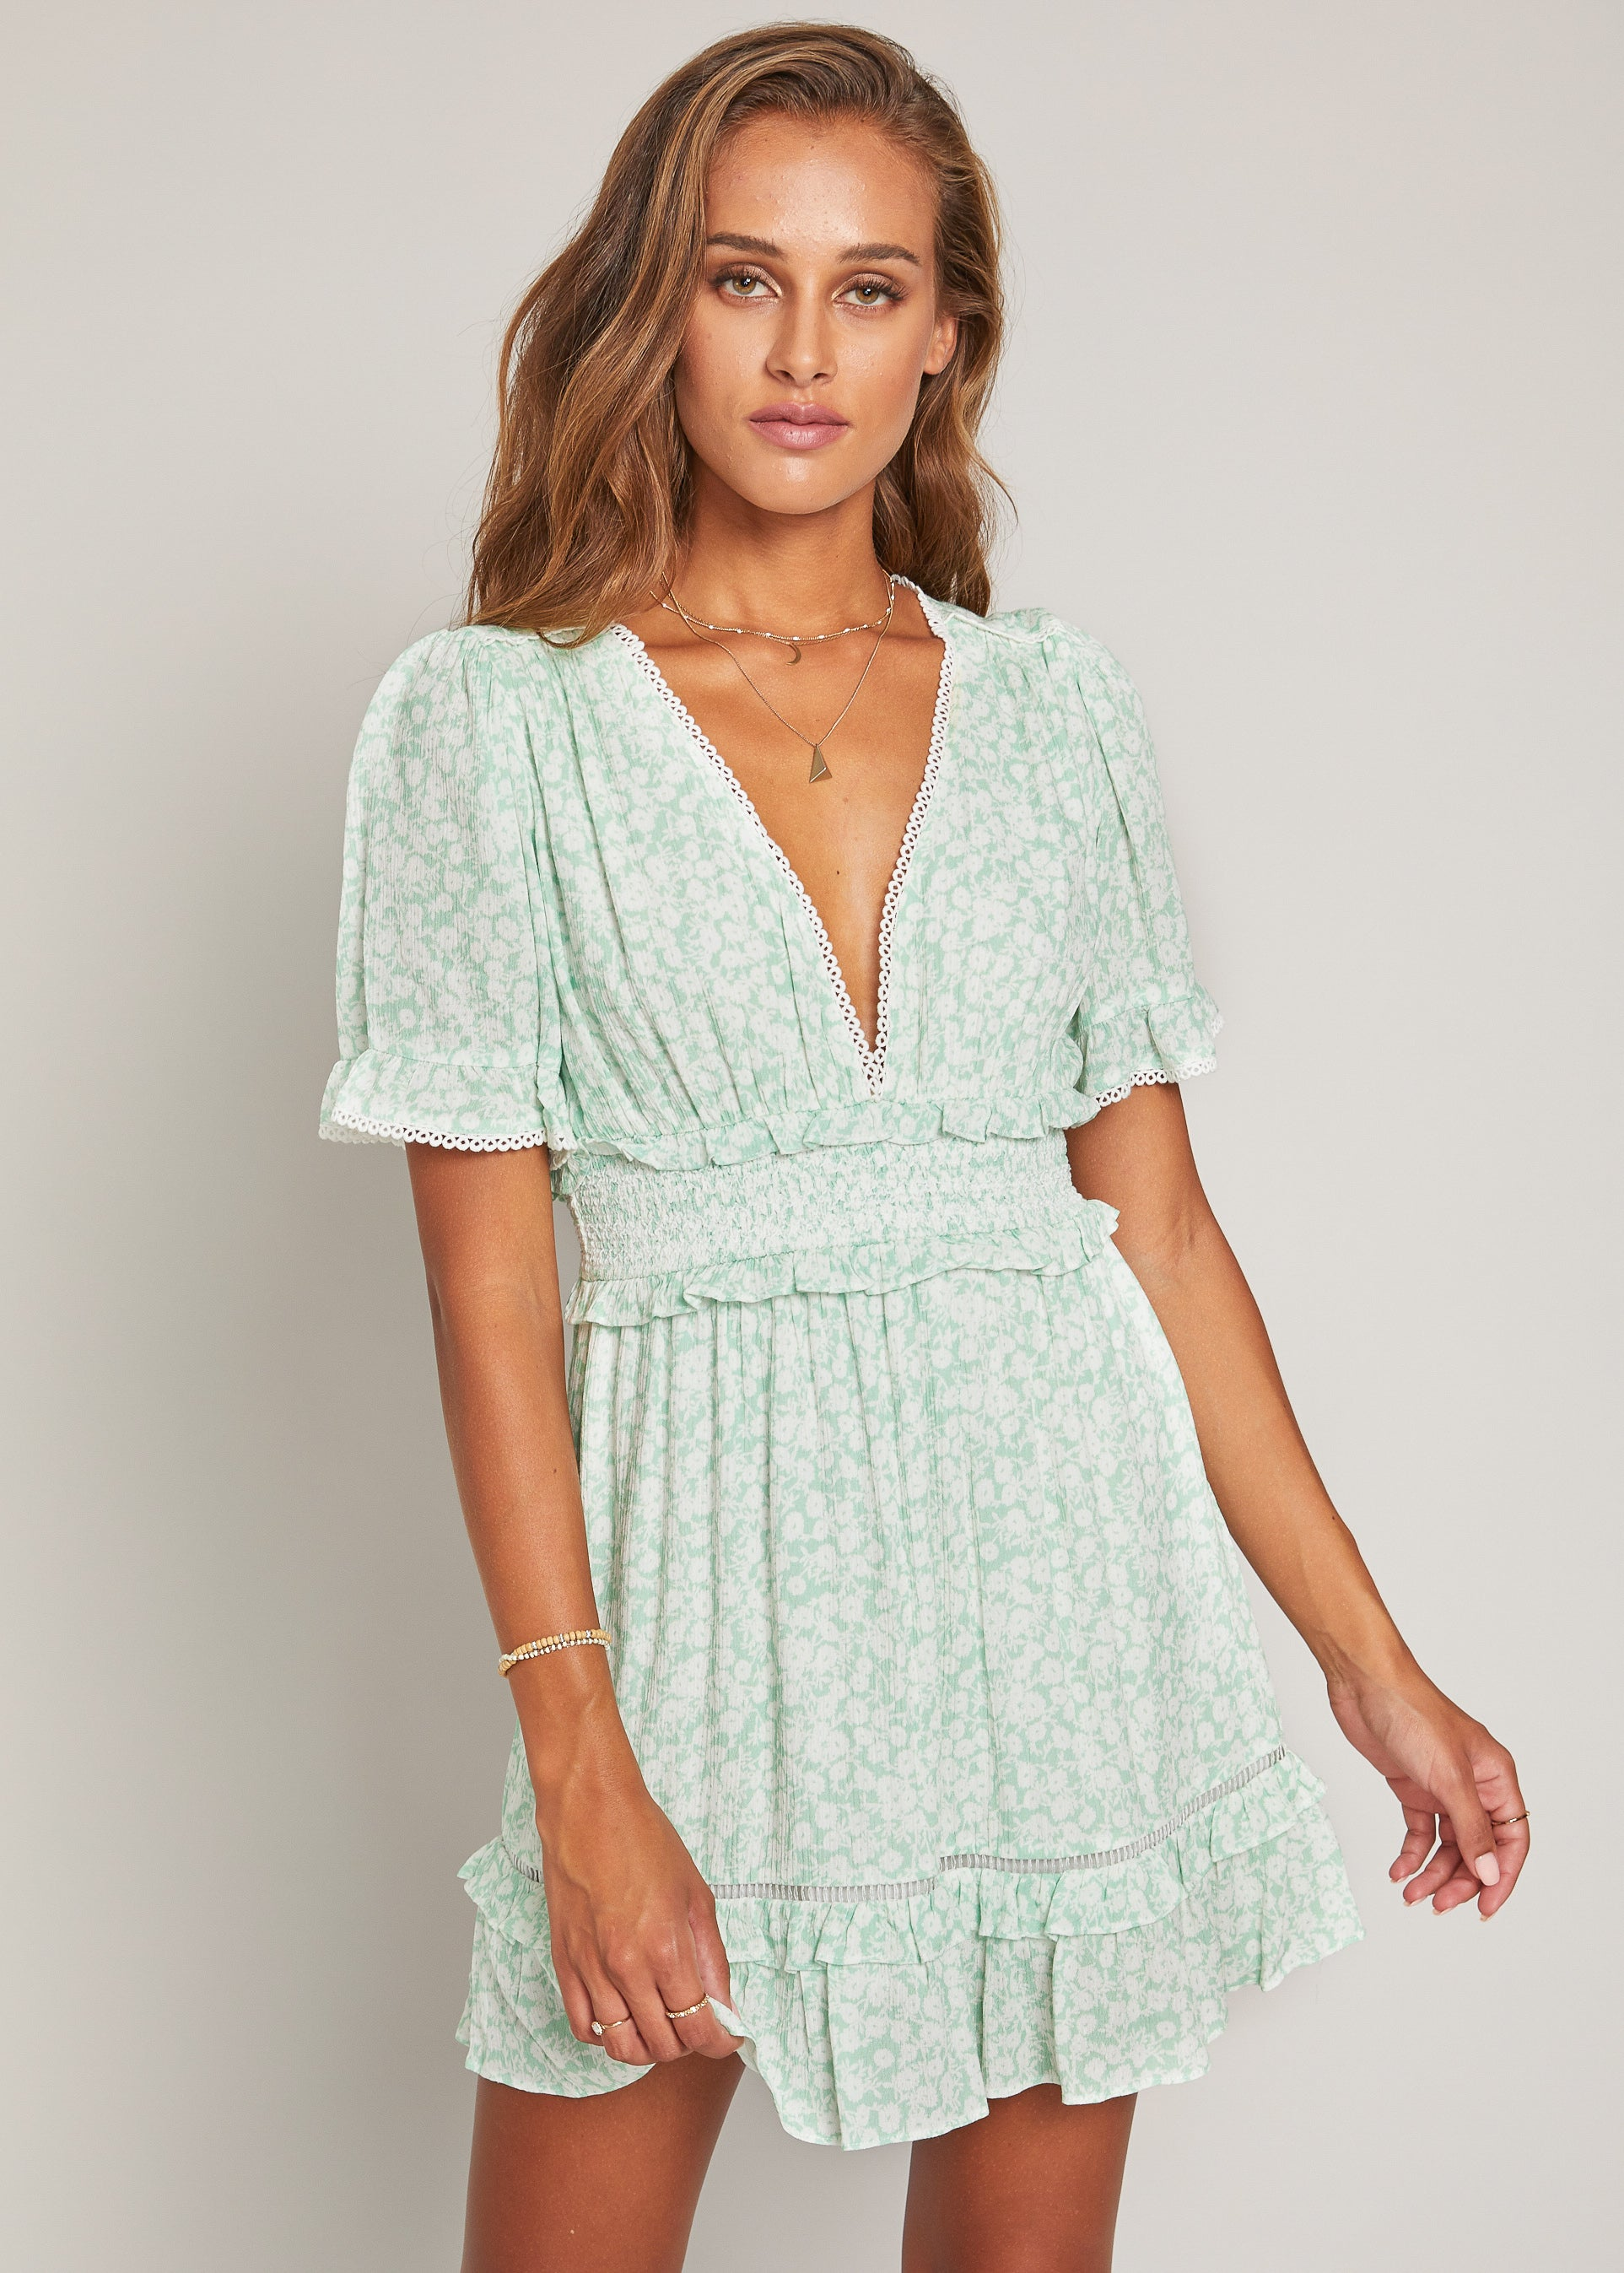 Mojito Please Mini Dress